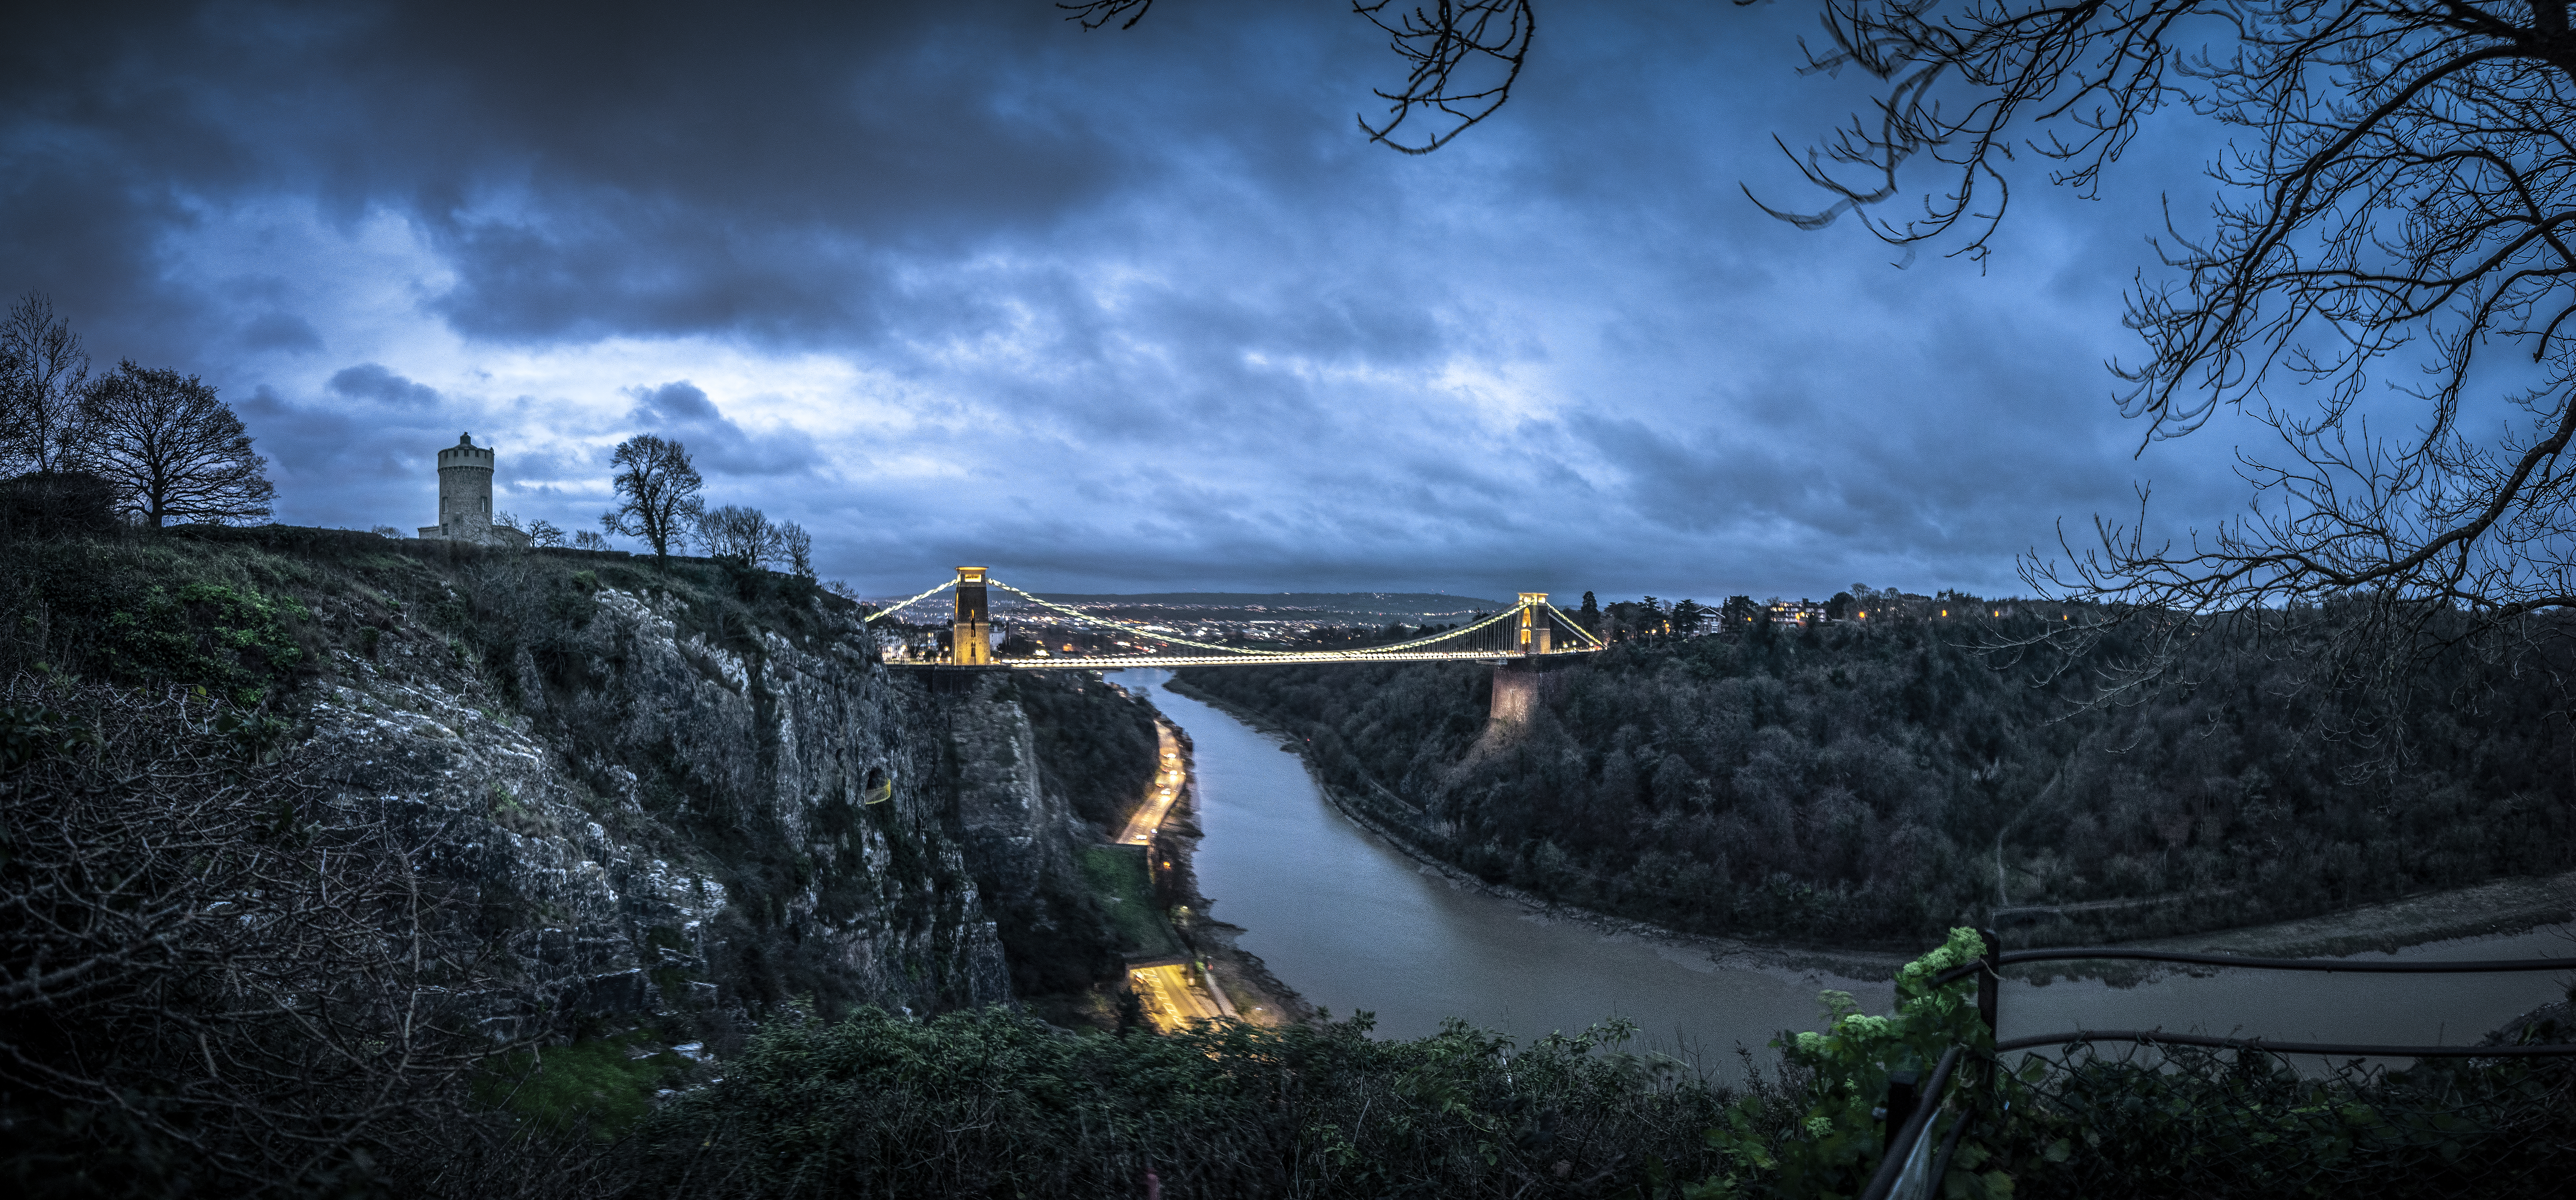 Clifton suspension bridge at dusk